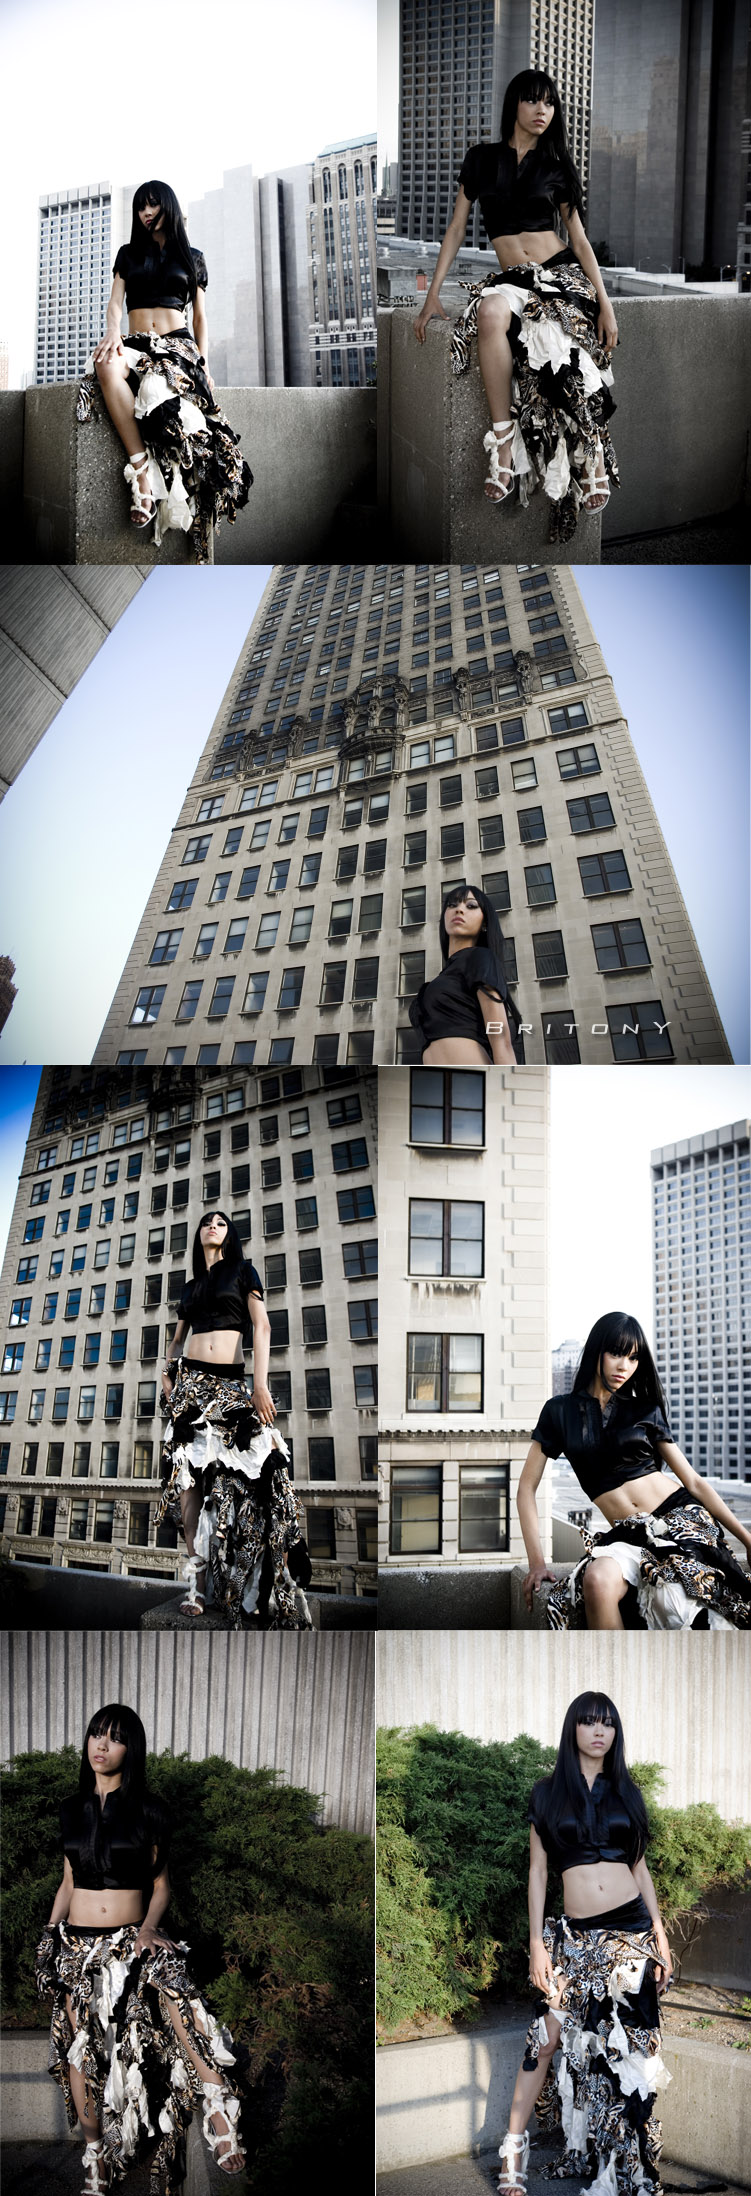 Female model photo shoot of donnatella macKenzie and Bretony in detroit, hair styled by LeticiaF Hair Stylist, wardrobe styled by A DIVAS SECRET, makeup by LeTicia F